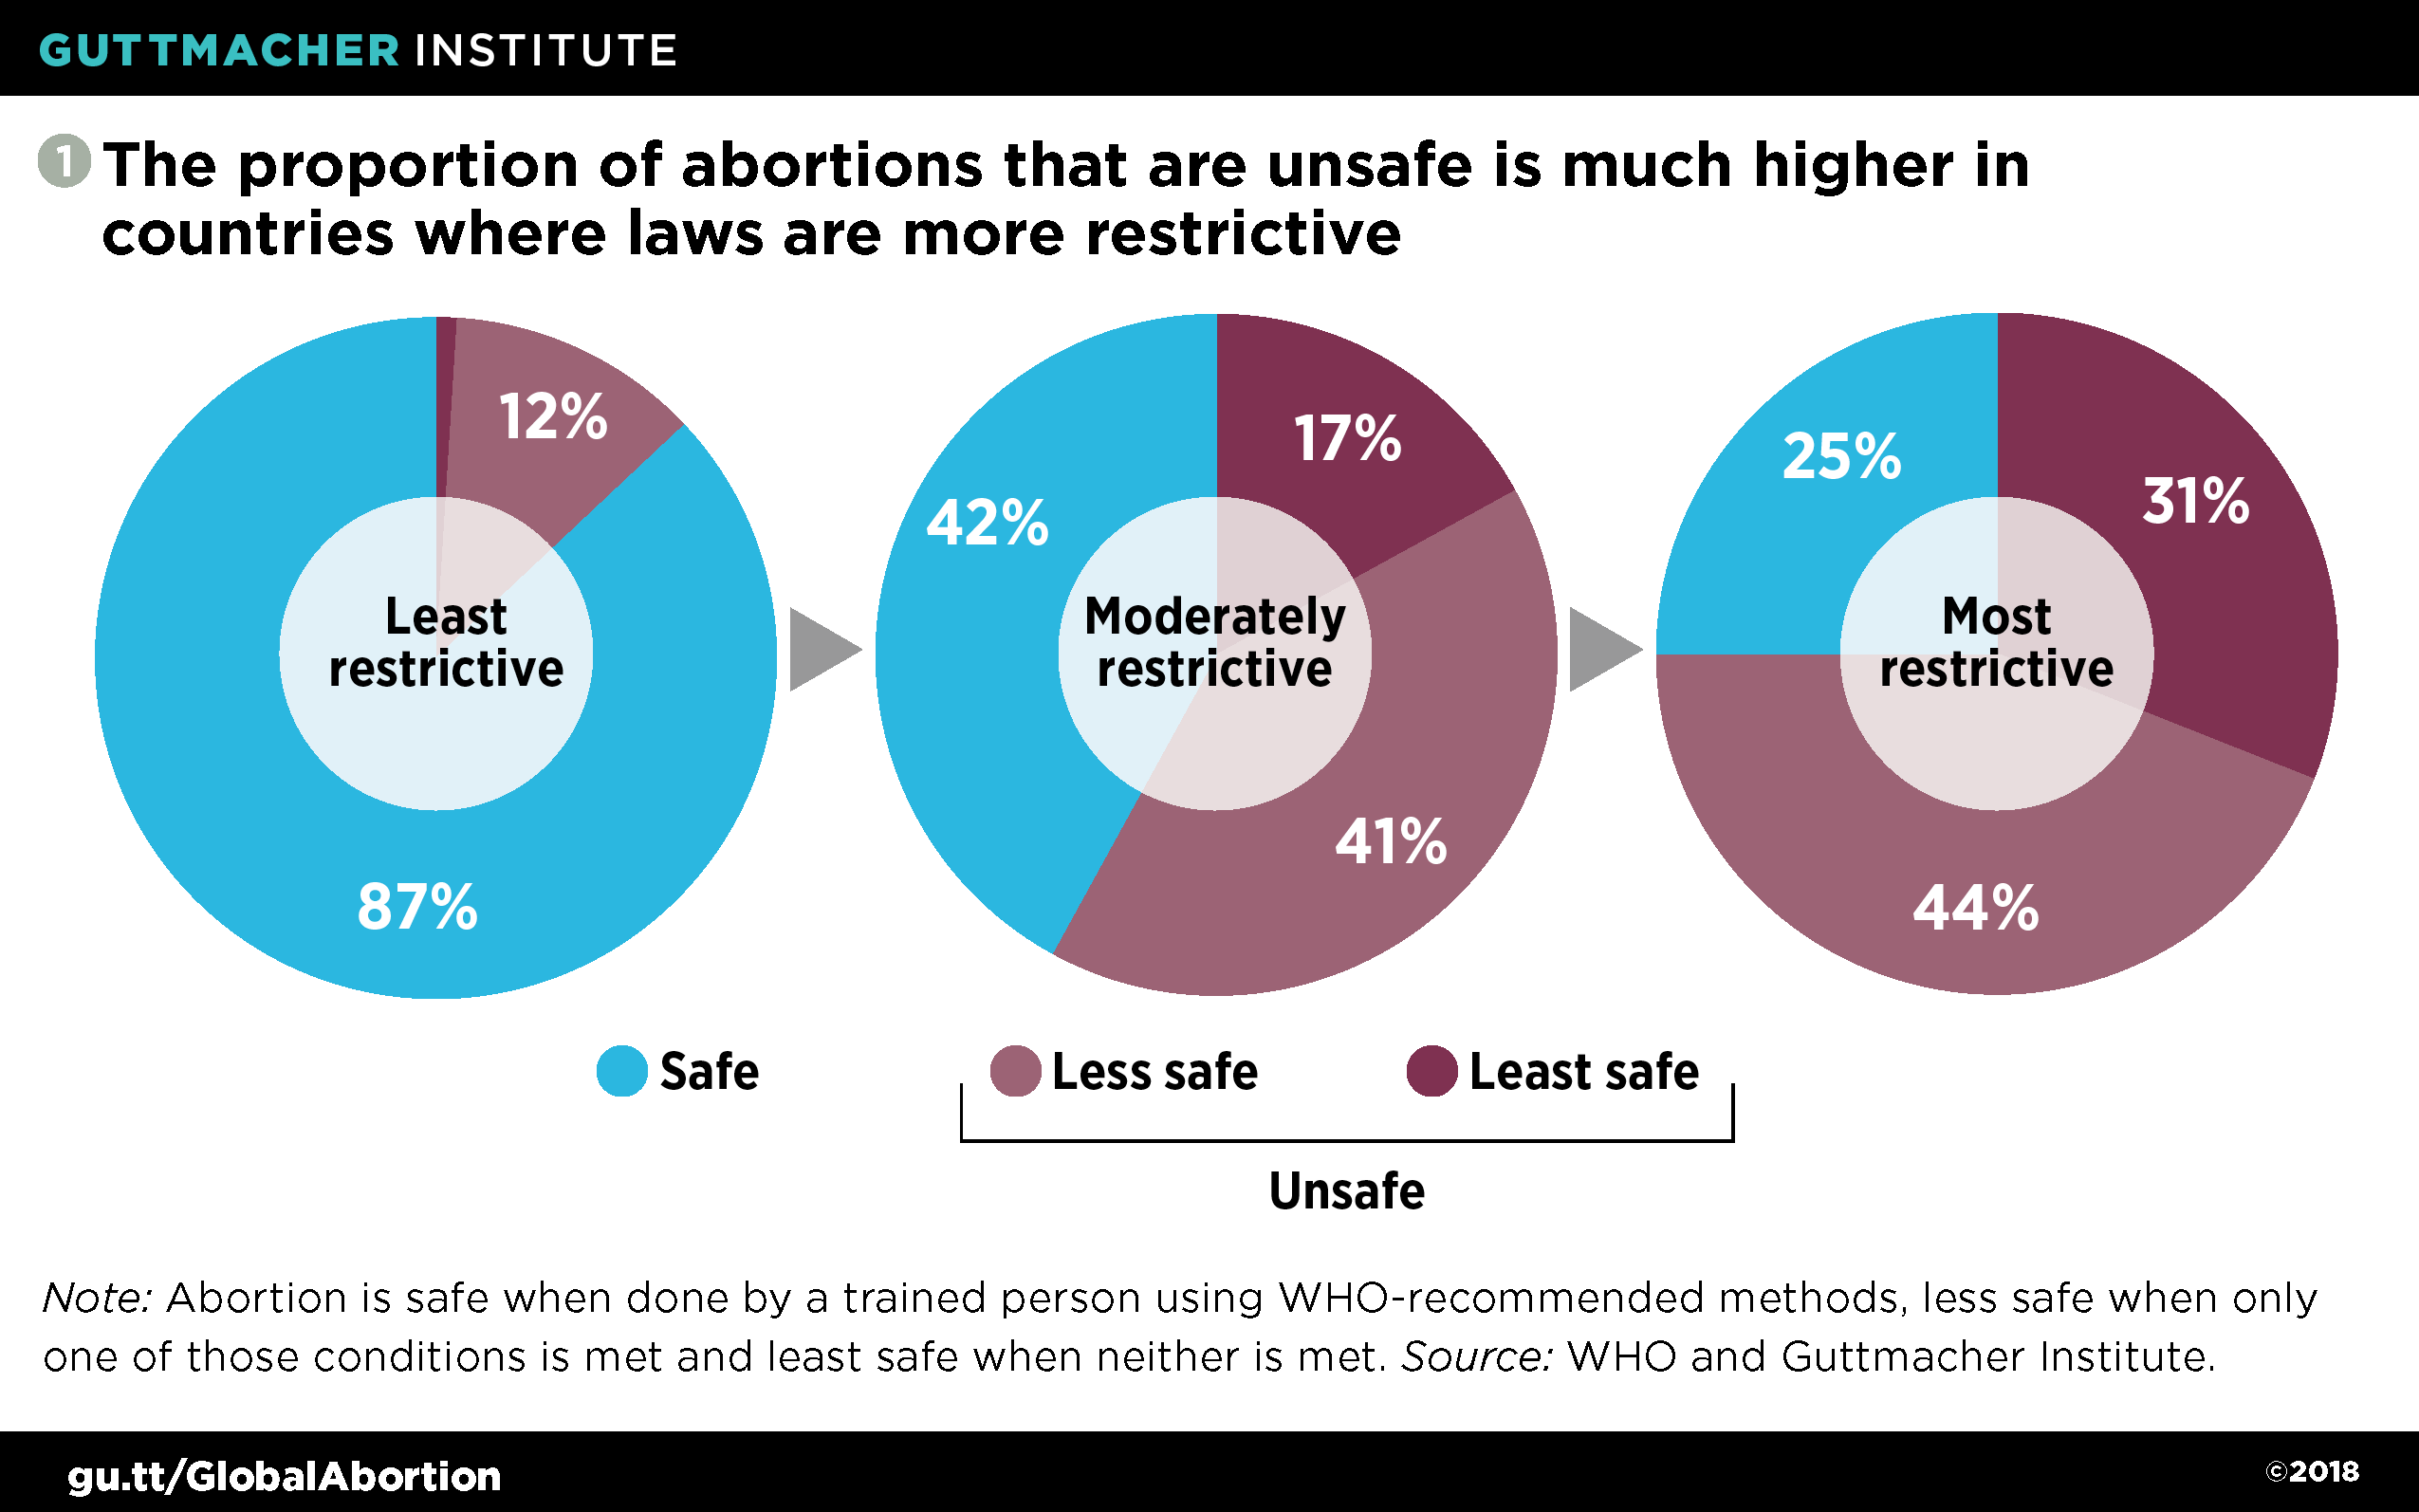 The roadmap to safe abortion worldwide lessons from new global importantly the slow but steady trend on legality has mostly moved toward liberalization of restrictive abortion laws between 2000 and 2017 27 countries ccuart Image collections